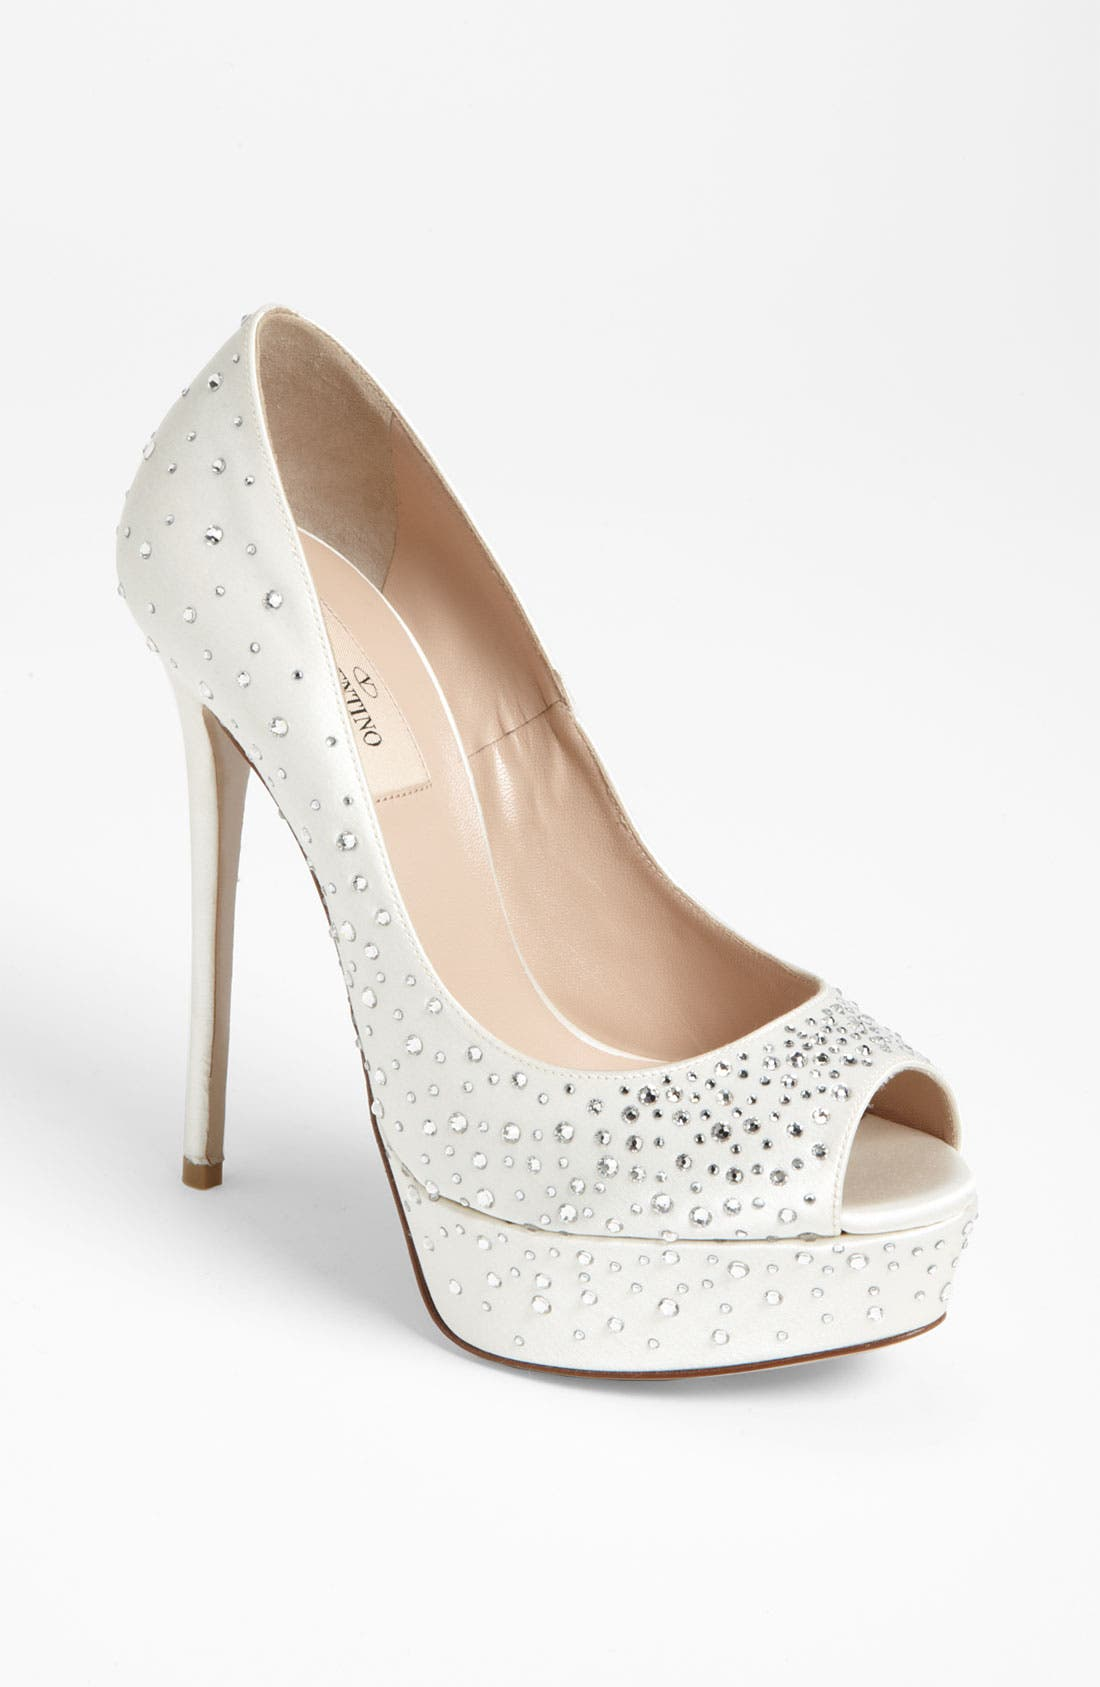 Alternate Image 1 Selected - VALENTINO GARAVANI 'Bridal' Open Toe Pump